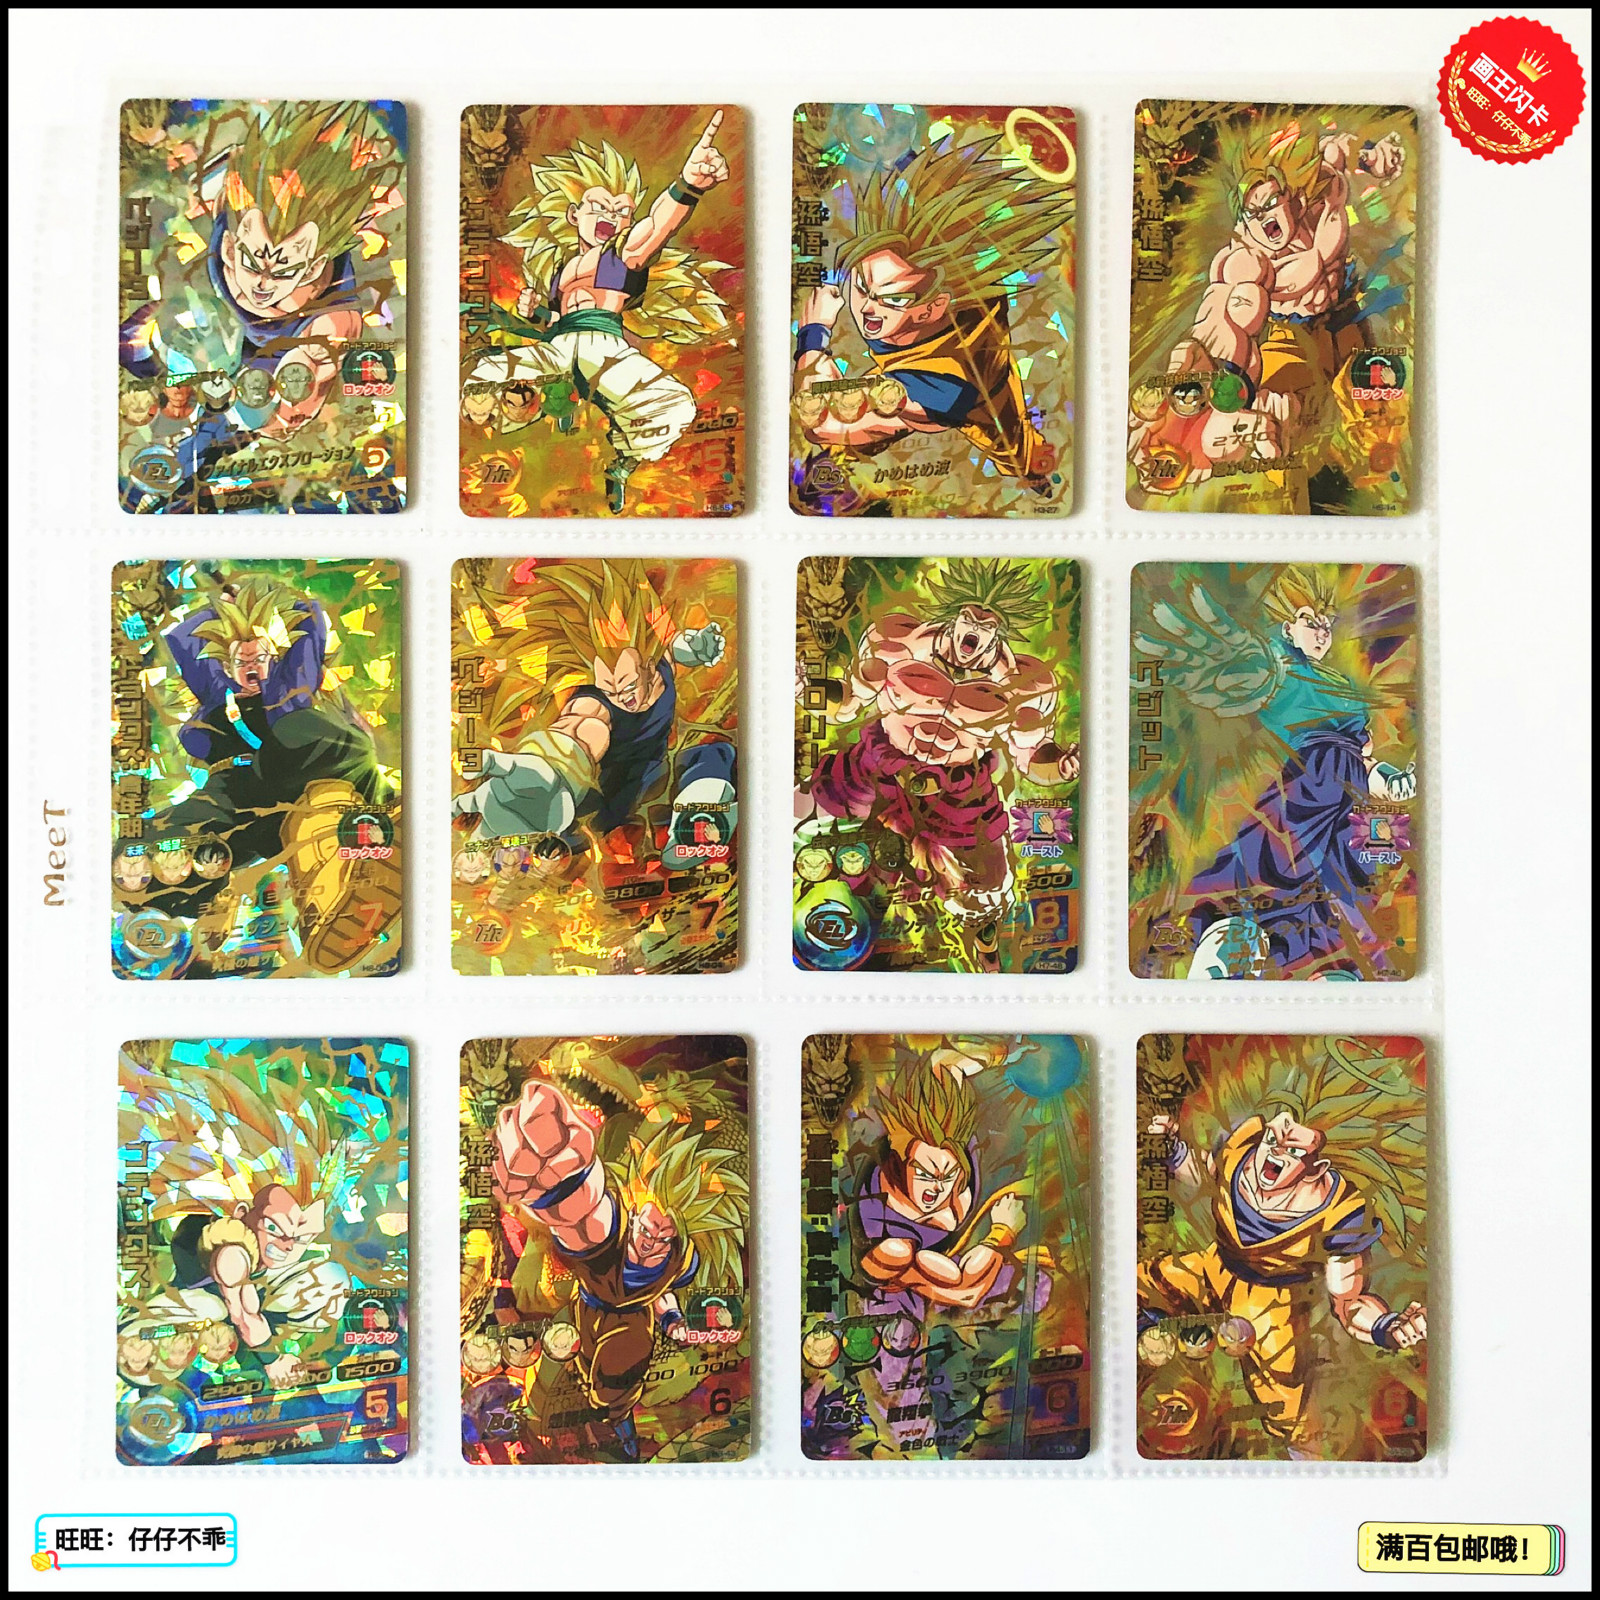 Japan Original Dragon Ball Hero Card 4 Stars UR Old Goku Toys Hobbies Collectibles Game Collection Anime Cards